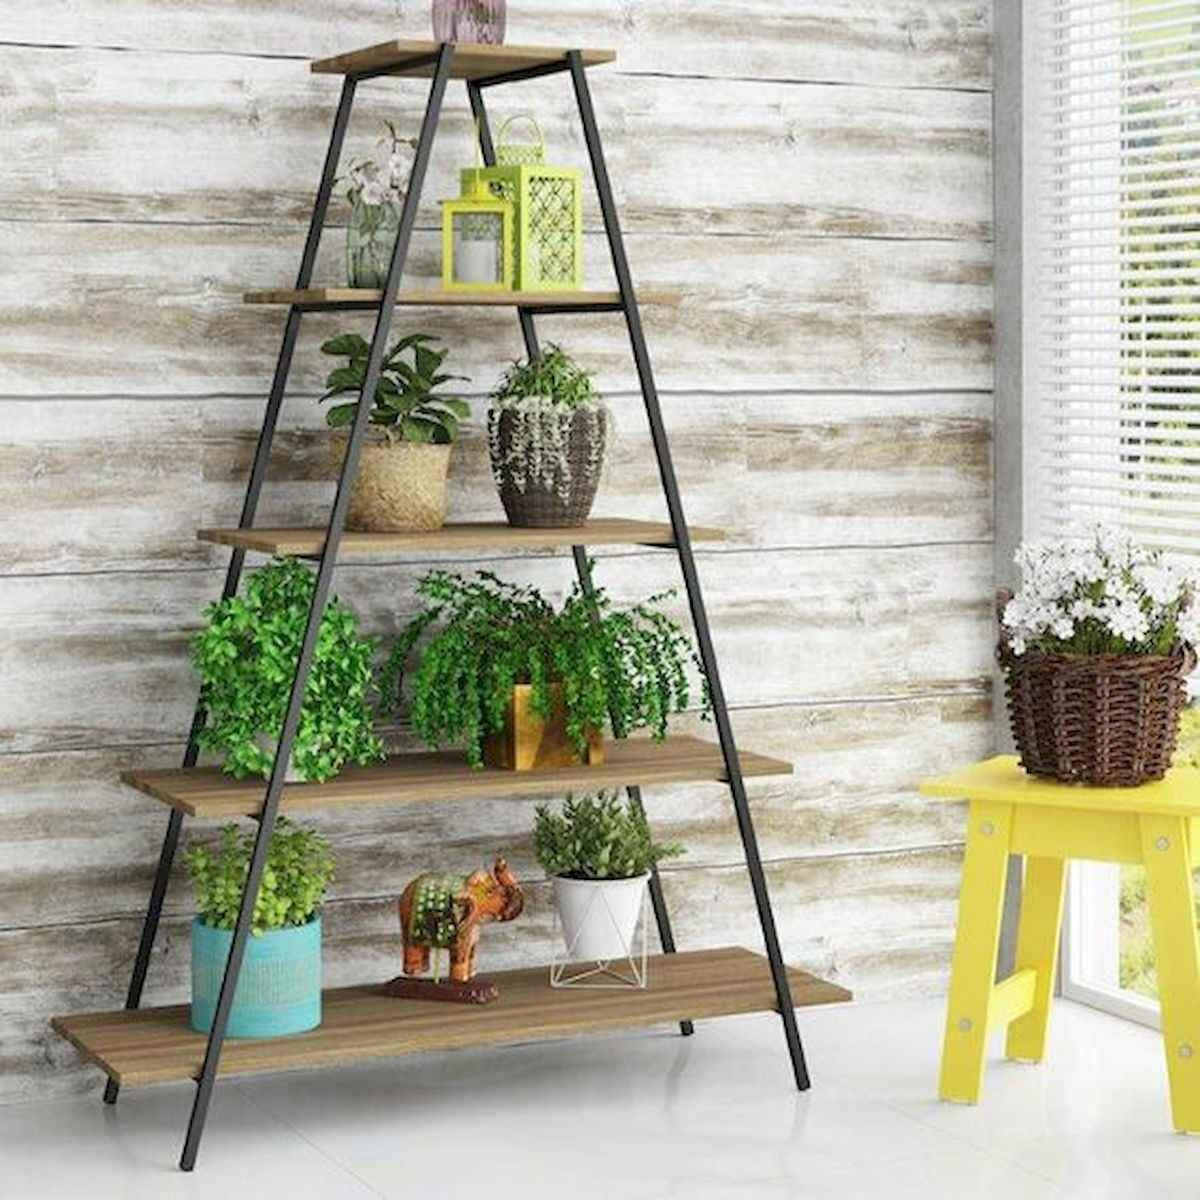 50 unique and creative ladder in the garden design ideas and remodel (51)